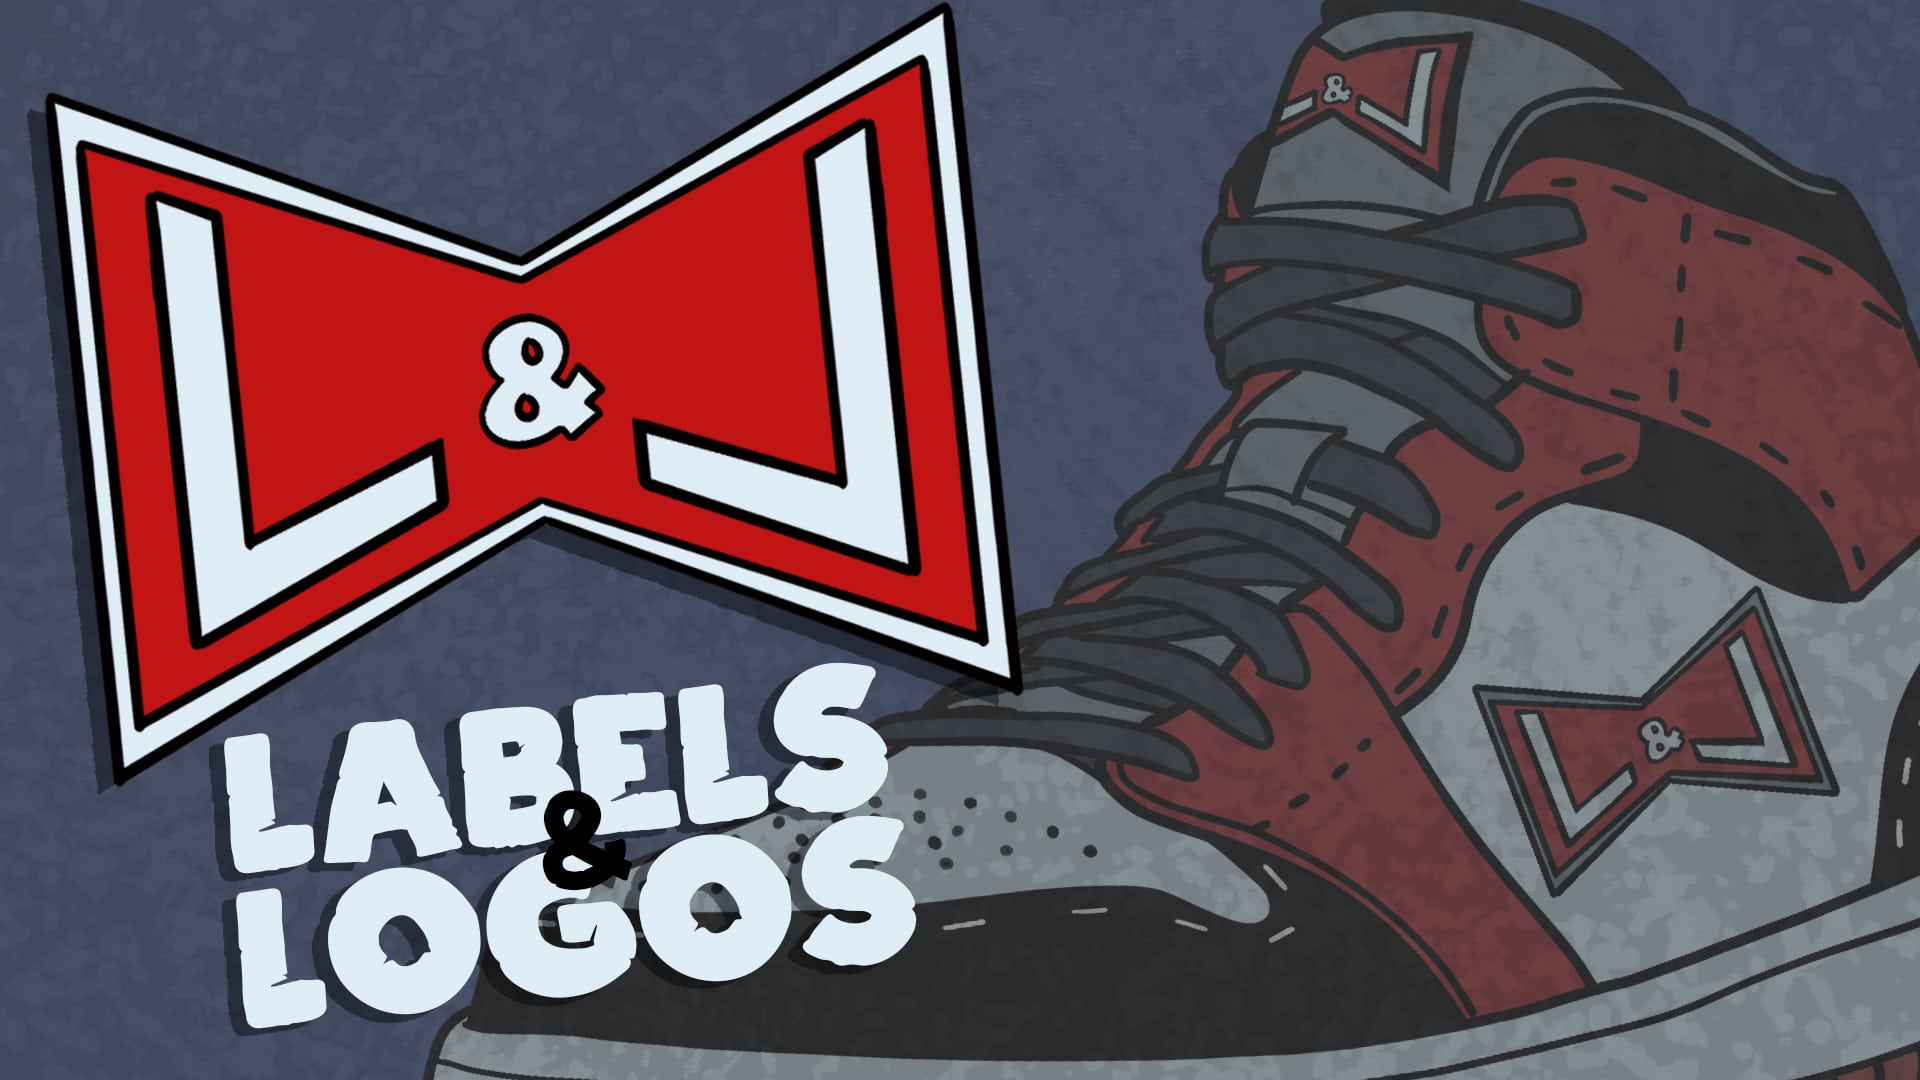 Labels and Logos - Episode 1